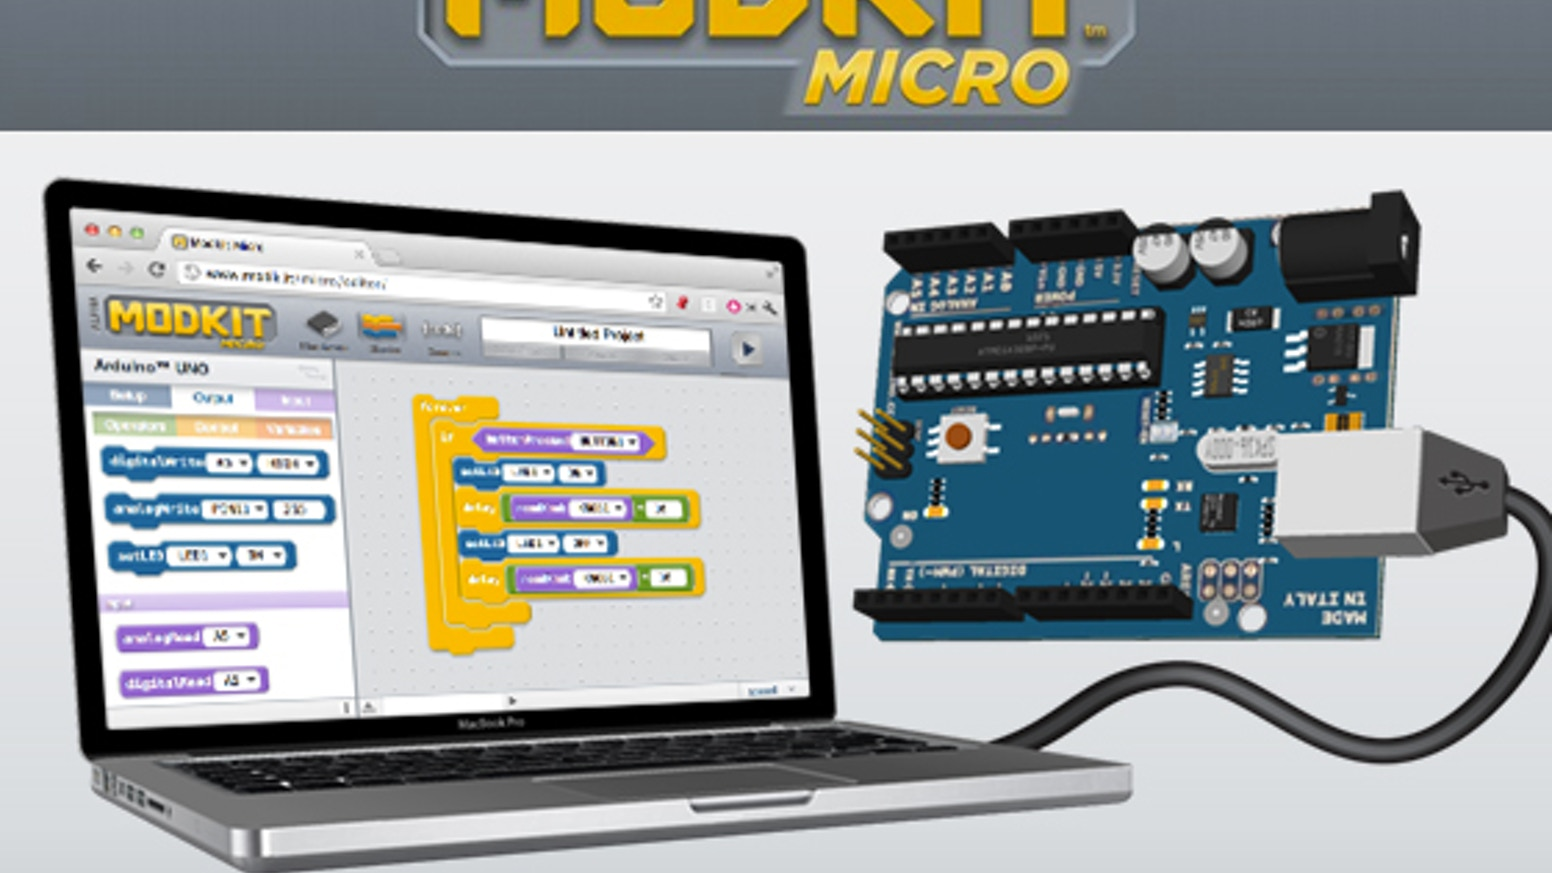 Modkit Micro: The Easiest Way to Program Microcontrollers by